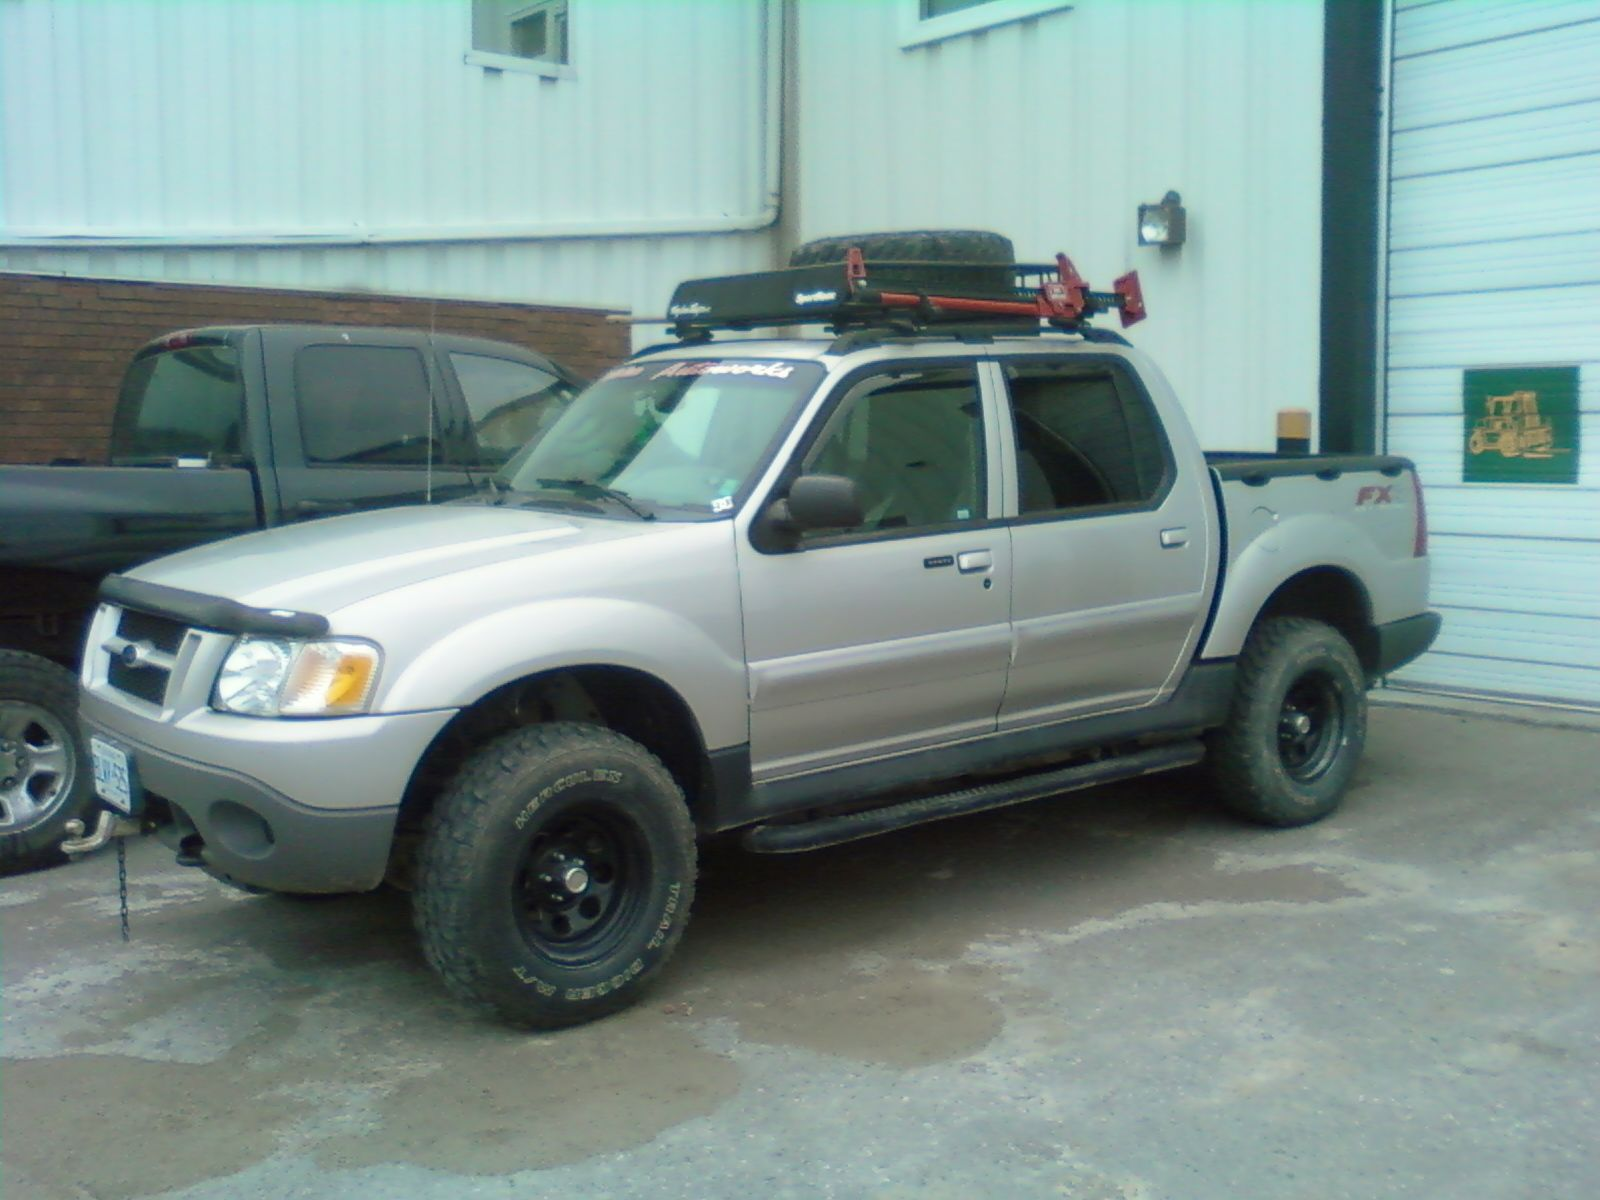 Ford 2010 Explorer Sport Trac Owners Manual Pdf Download